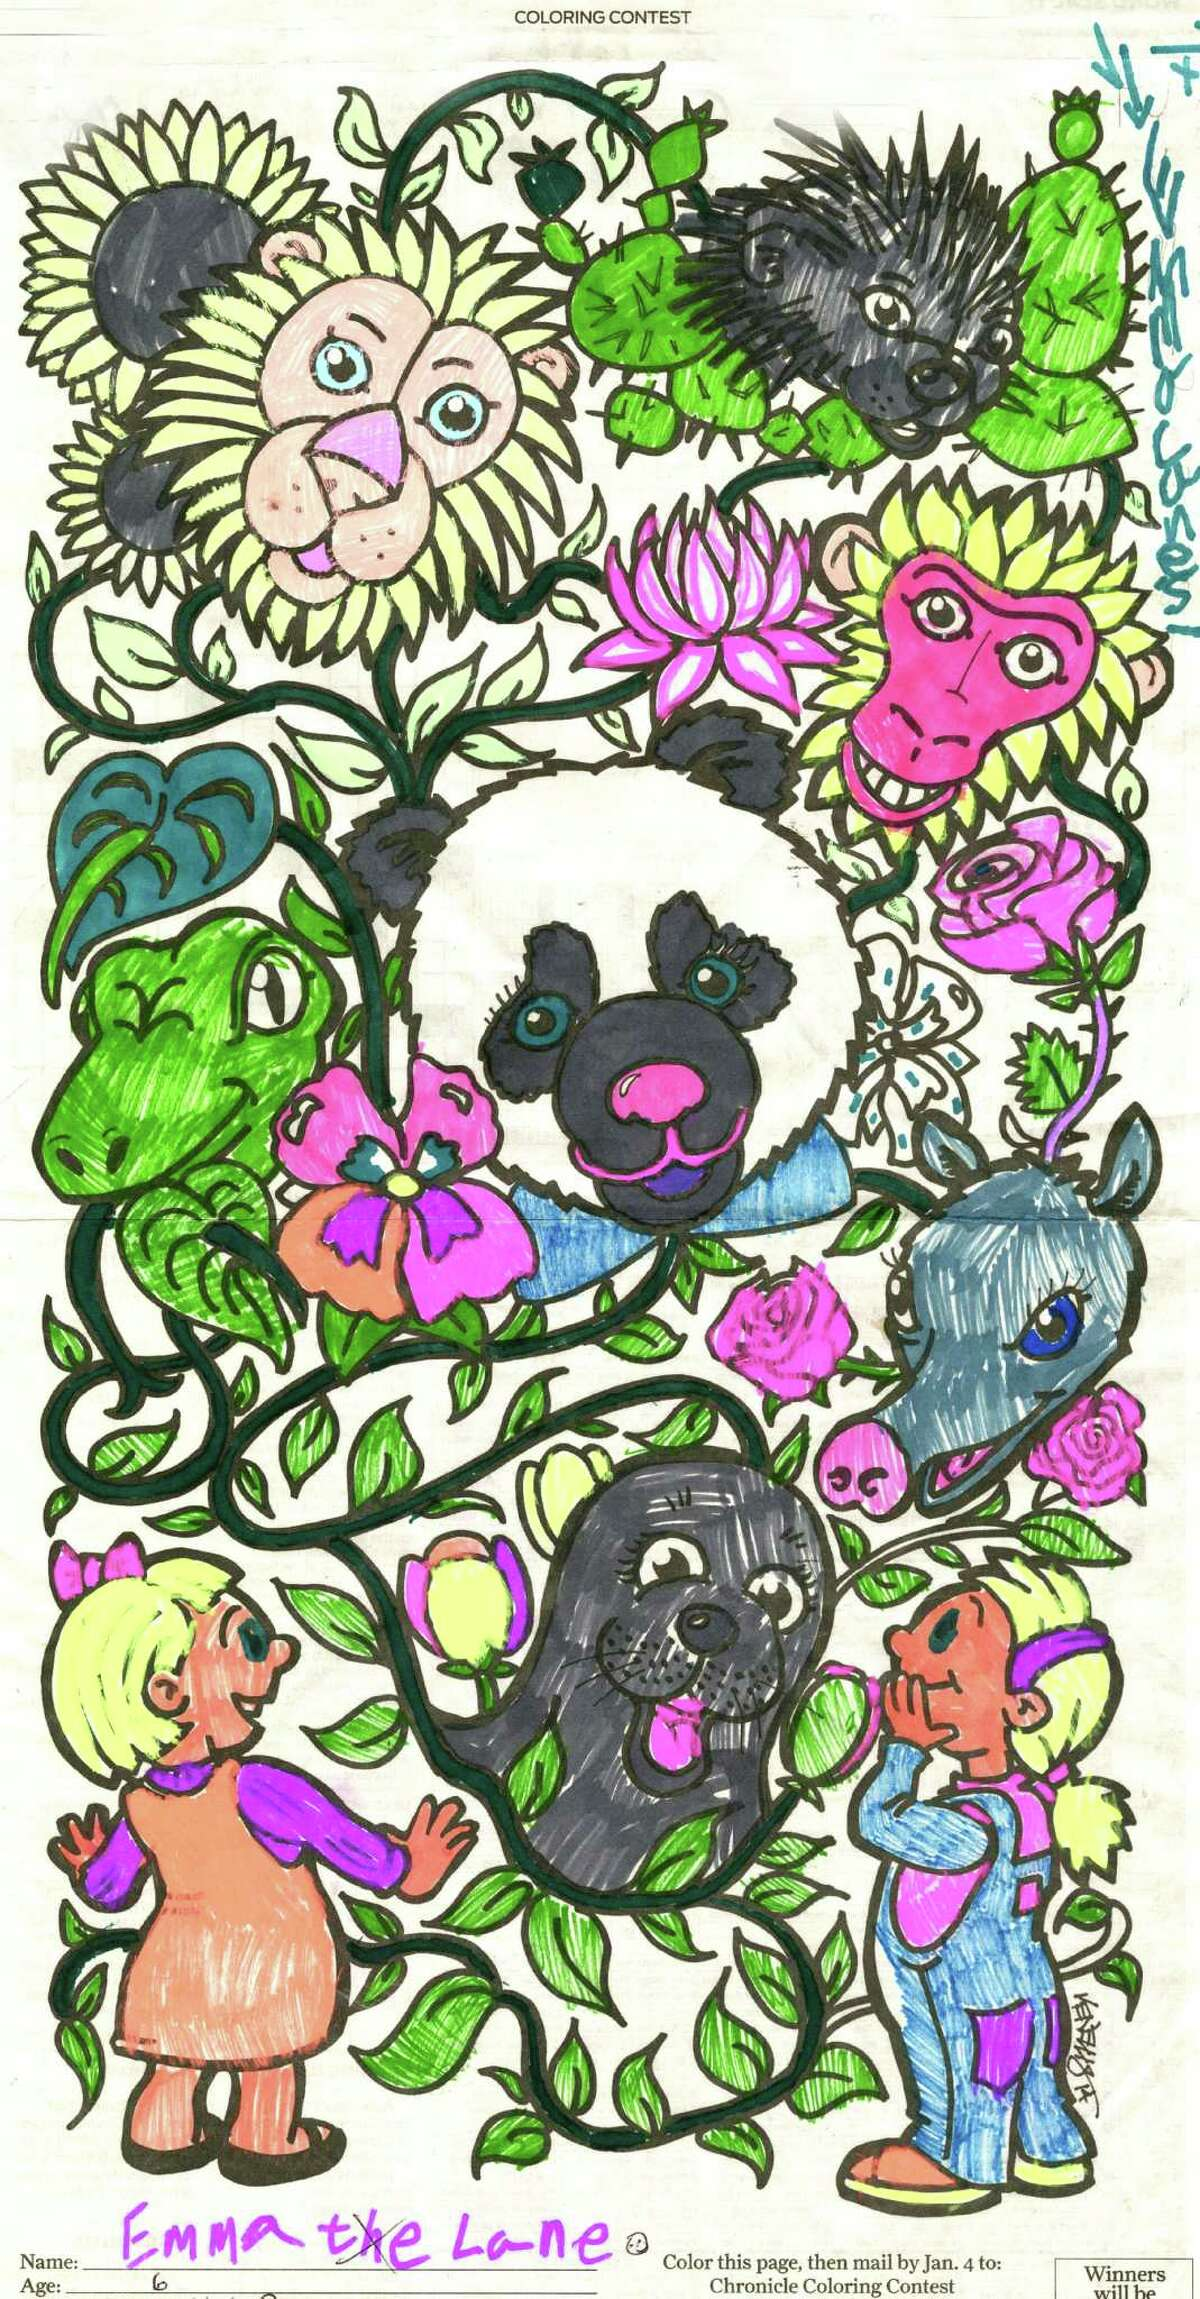 Chronicle coloring contest winner: Emma Lane, age 6